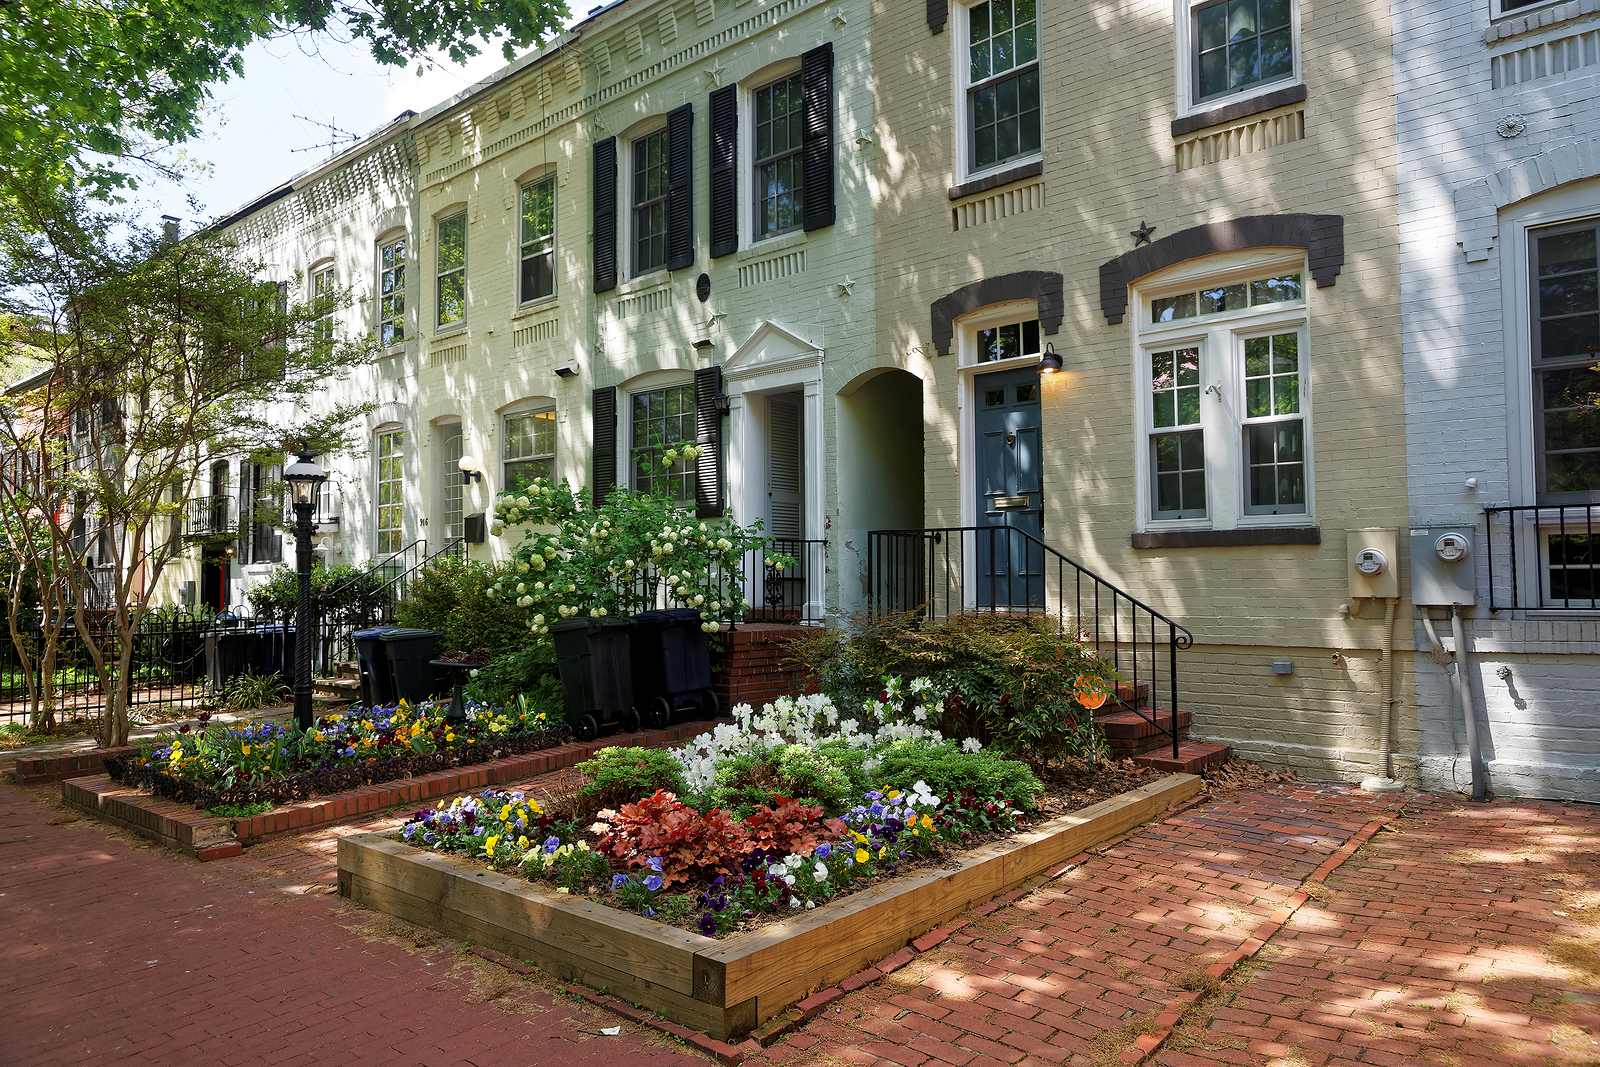 raised-flower-beds-curb-appeal-small-historic-homes-renaissance-development-dc